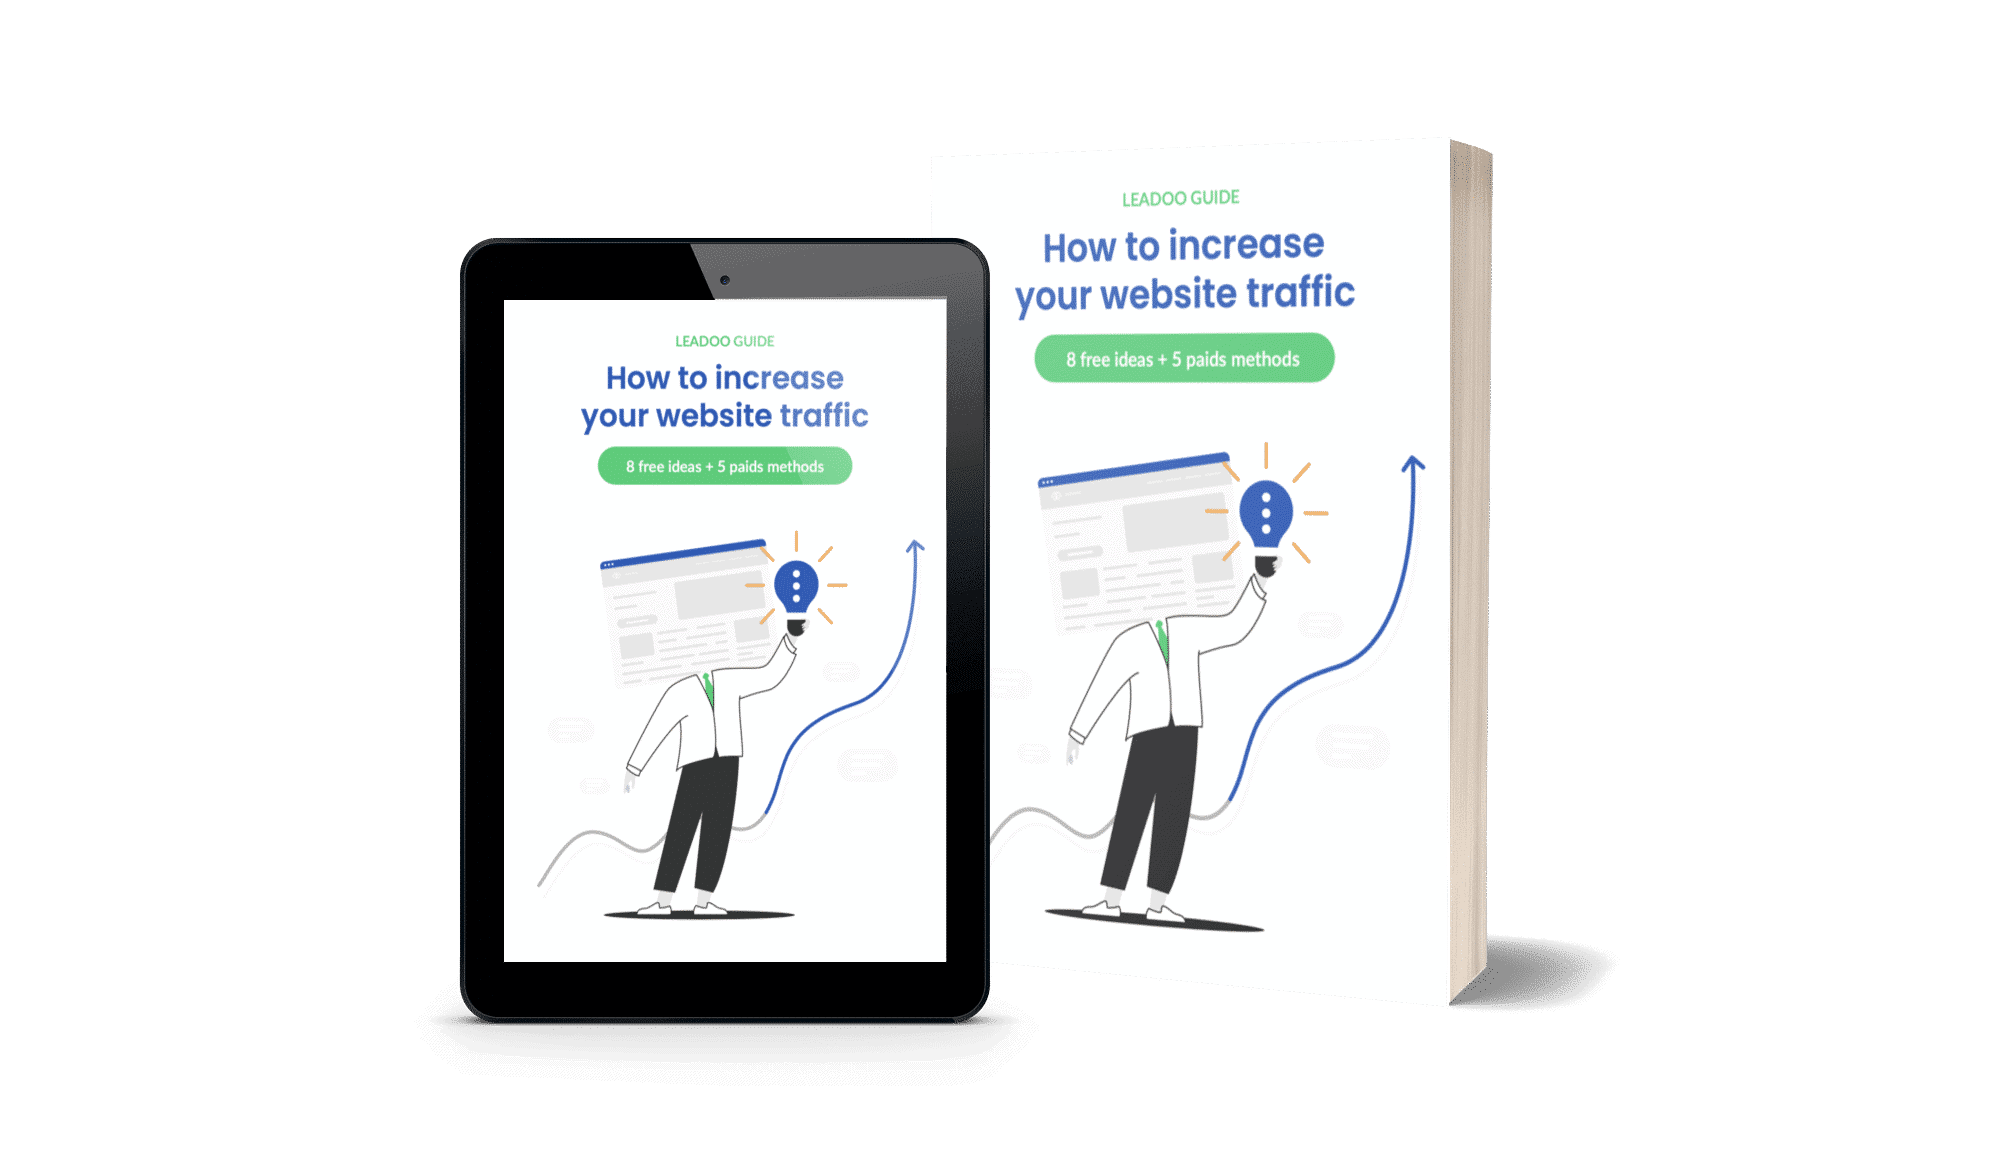 1593177186 how to increase your website traffic Guide how to increase your website traffic 8 free ideas and 5 paid methods